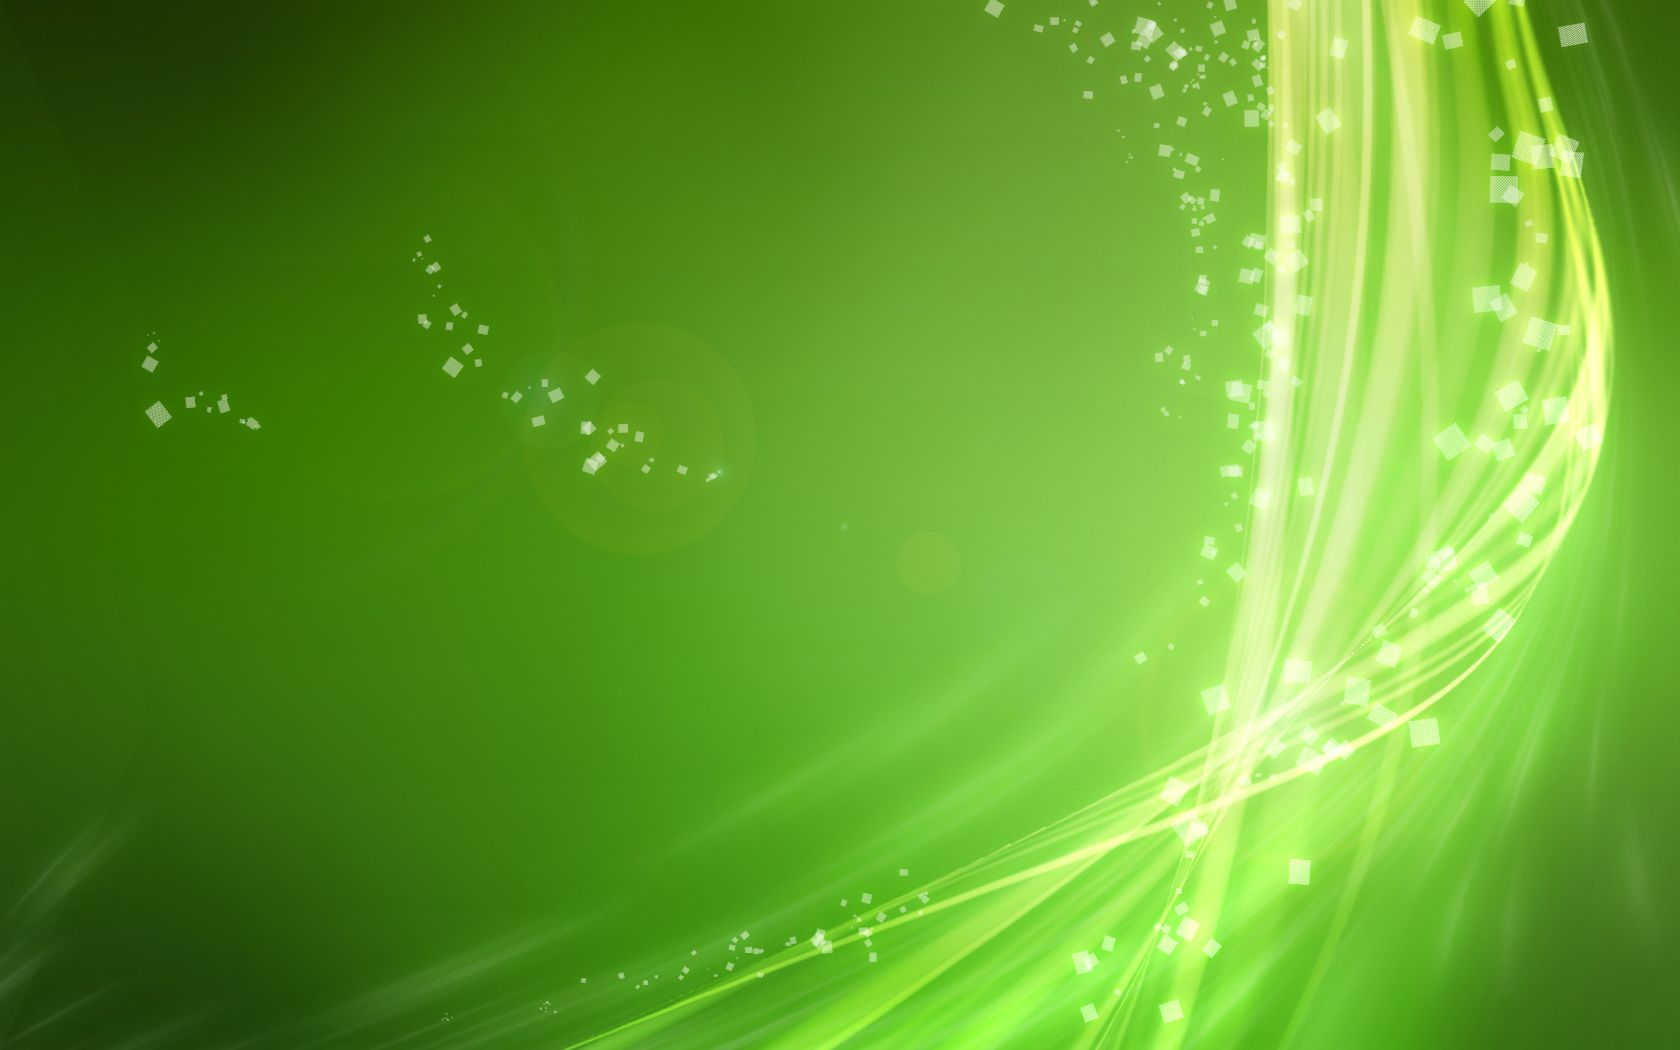 Green Abstract Wallpaper Abstract Wallpaper Backgrounds